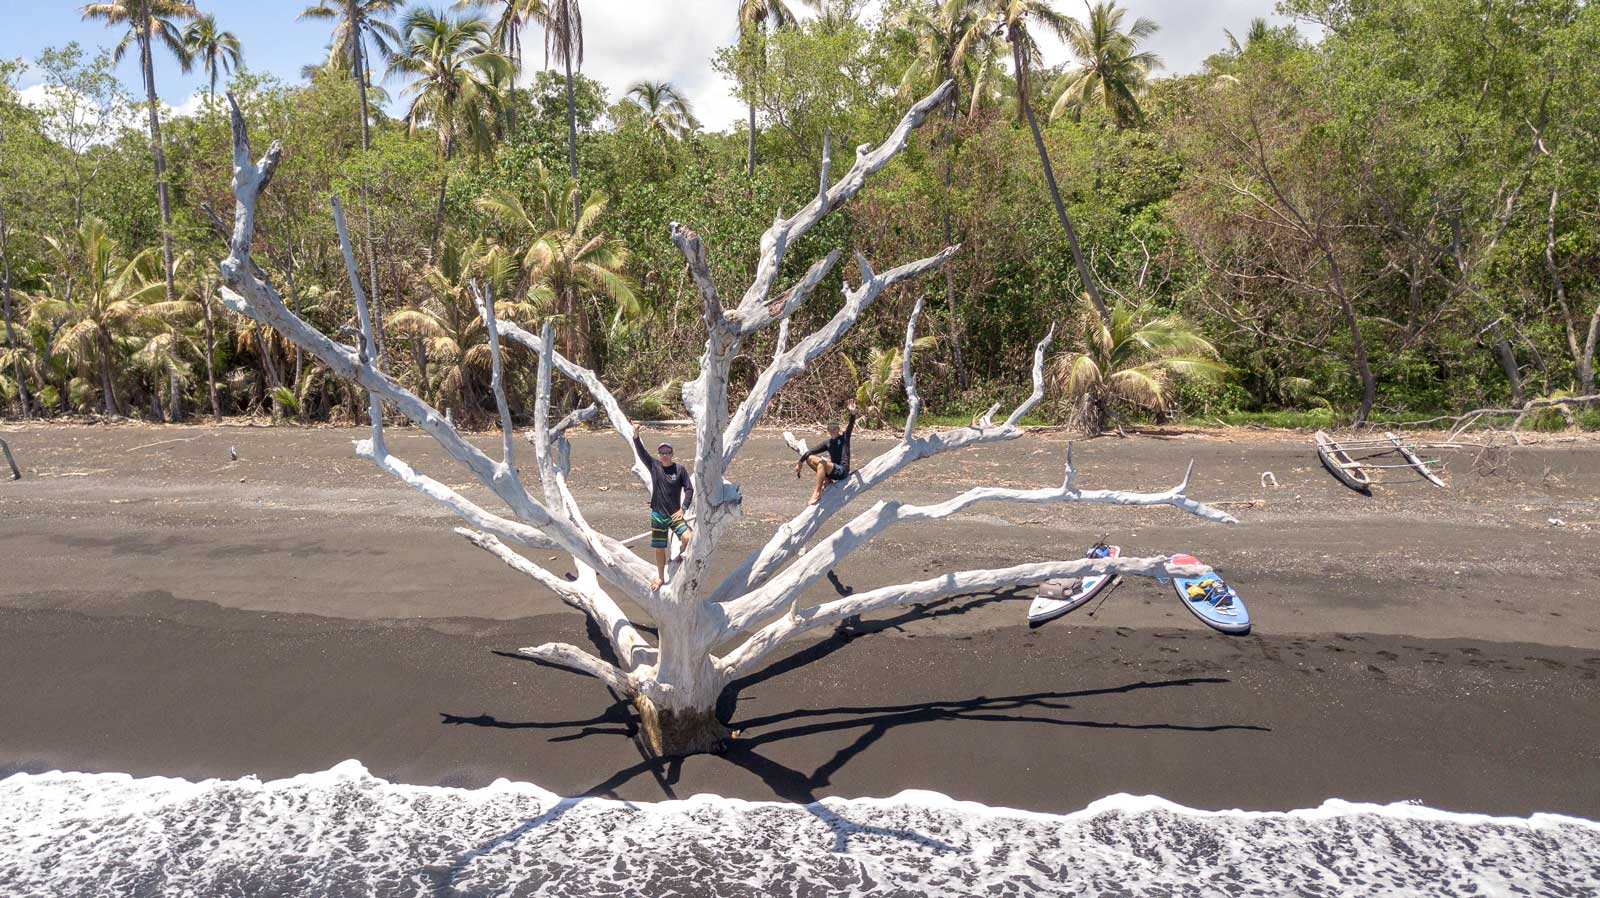 Islands-of-Vanuatu-by-Paddleboard-friends-tree-drone-shot-1600